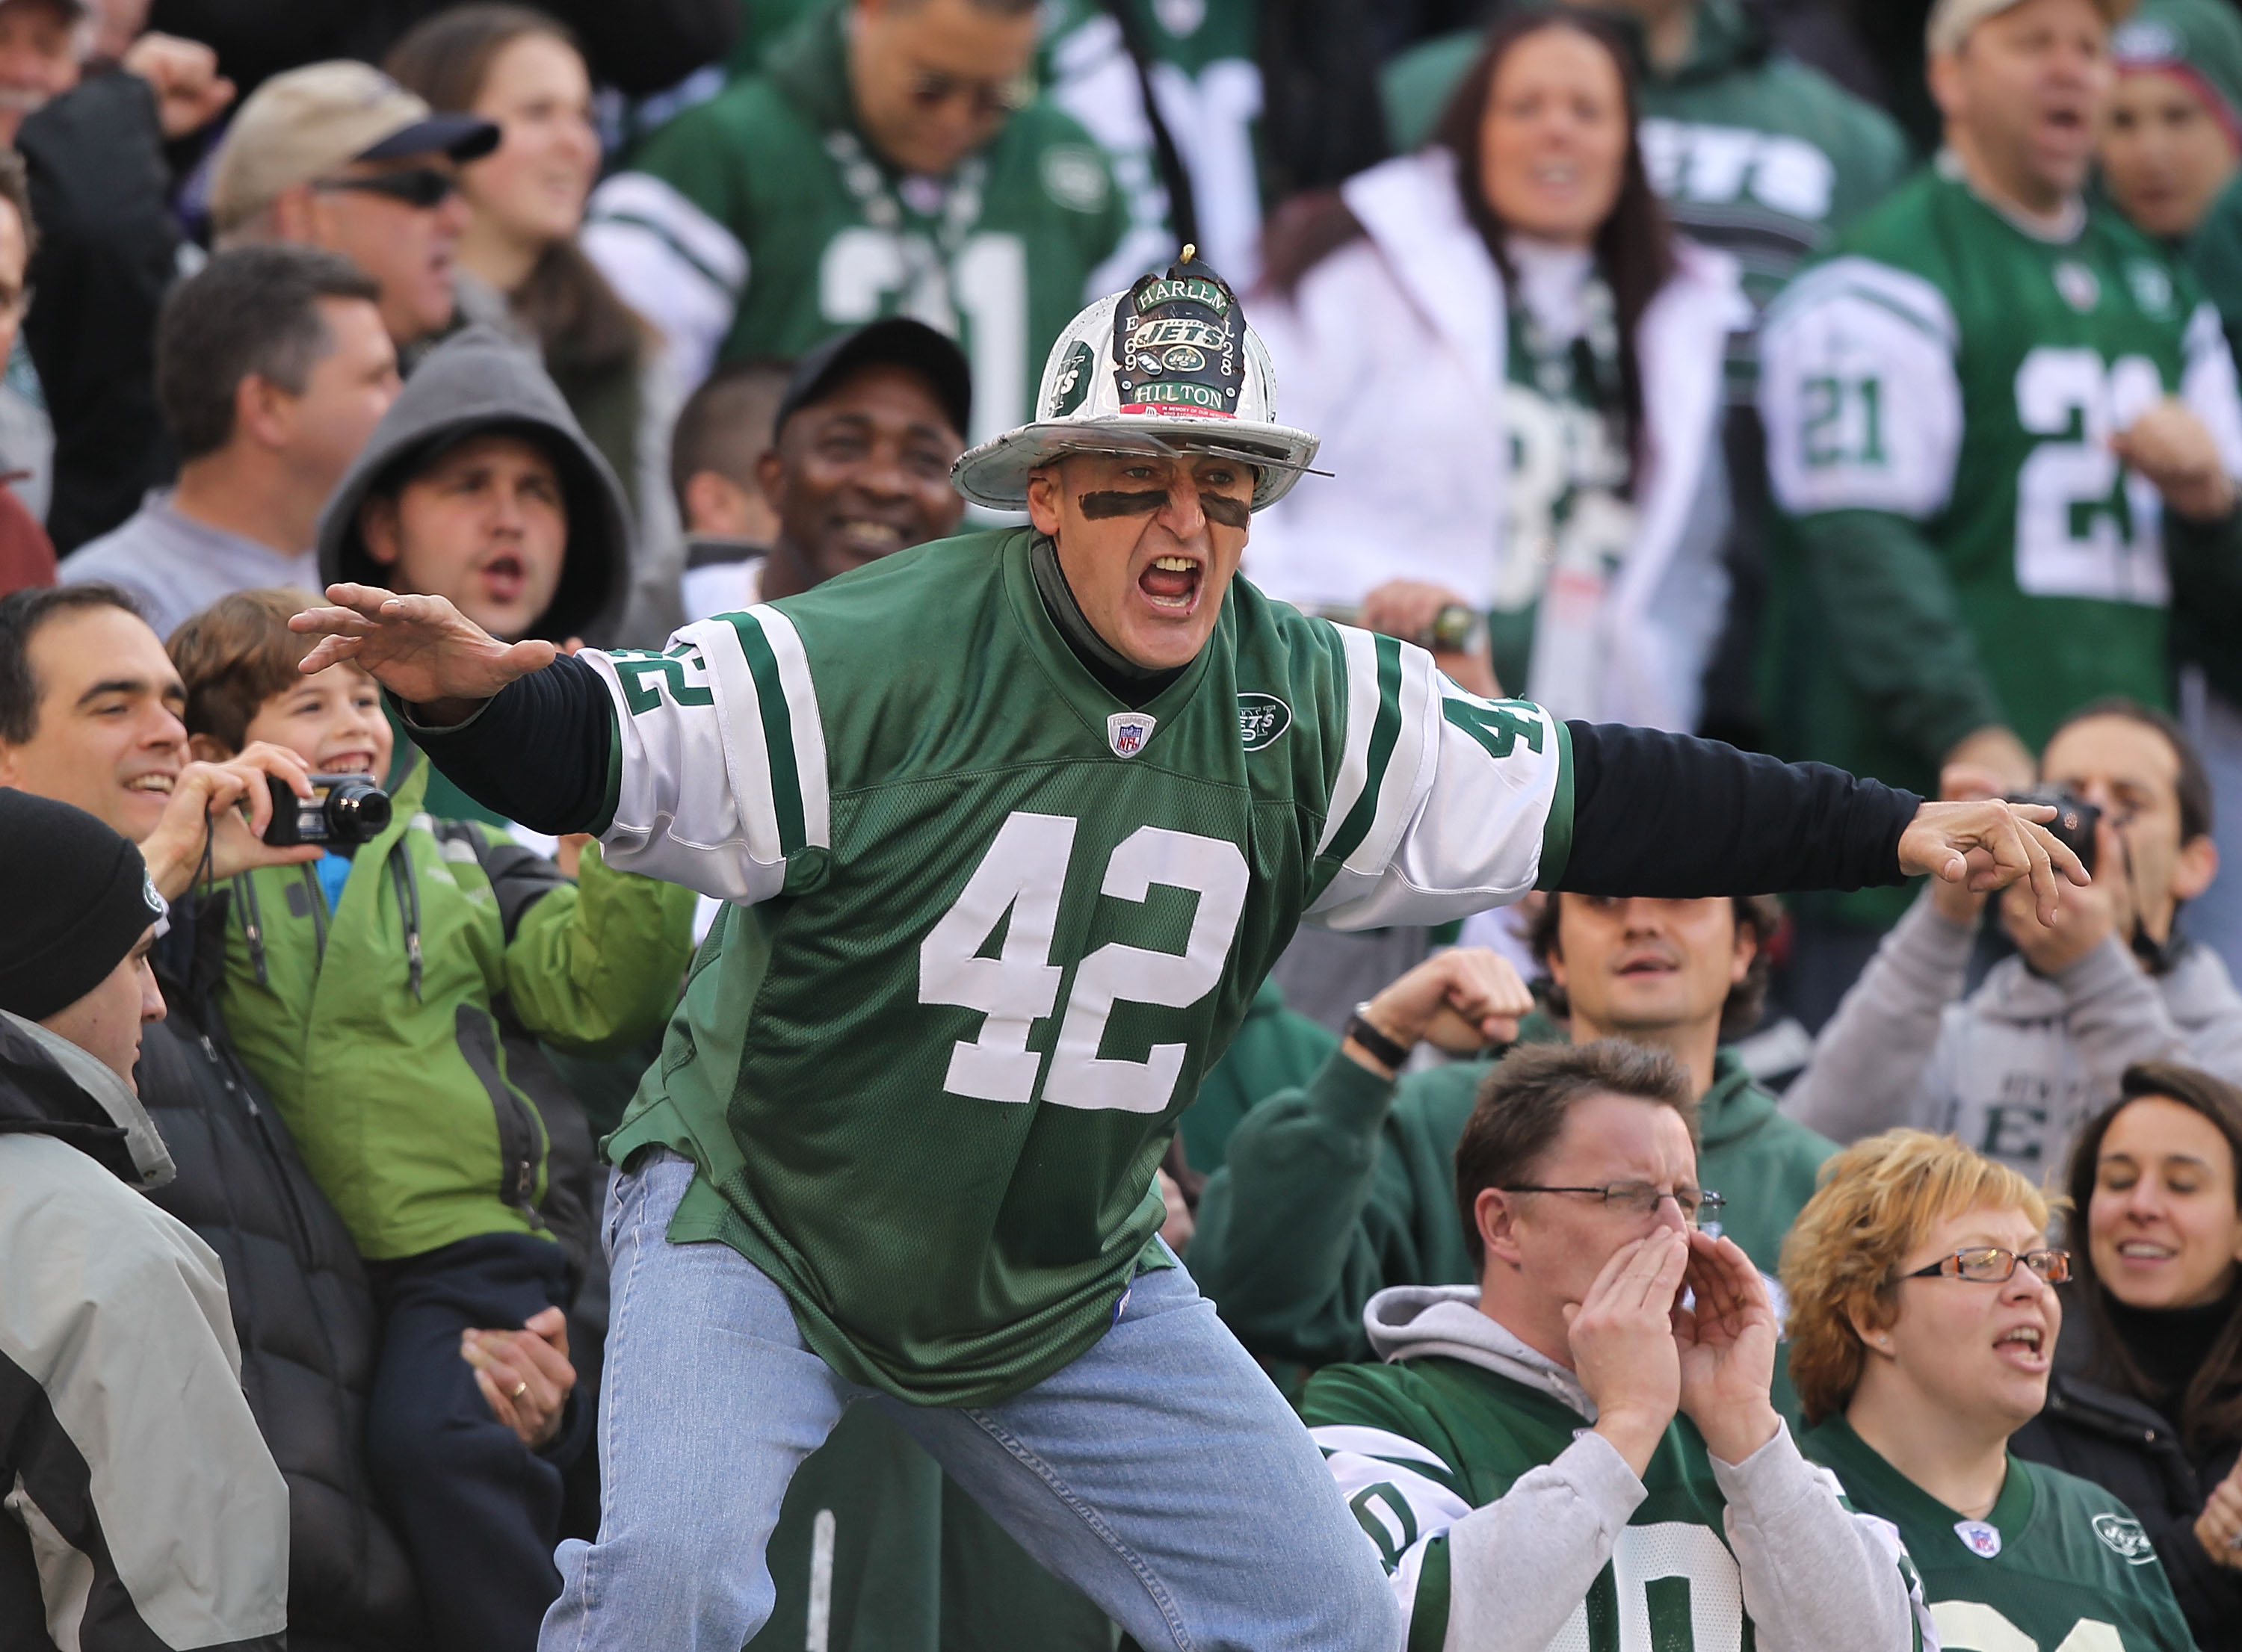 New York Jets: Ranking the Teams Jets Fans Love to Hate the Most